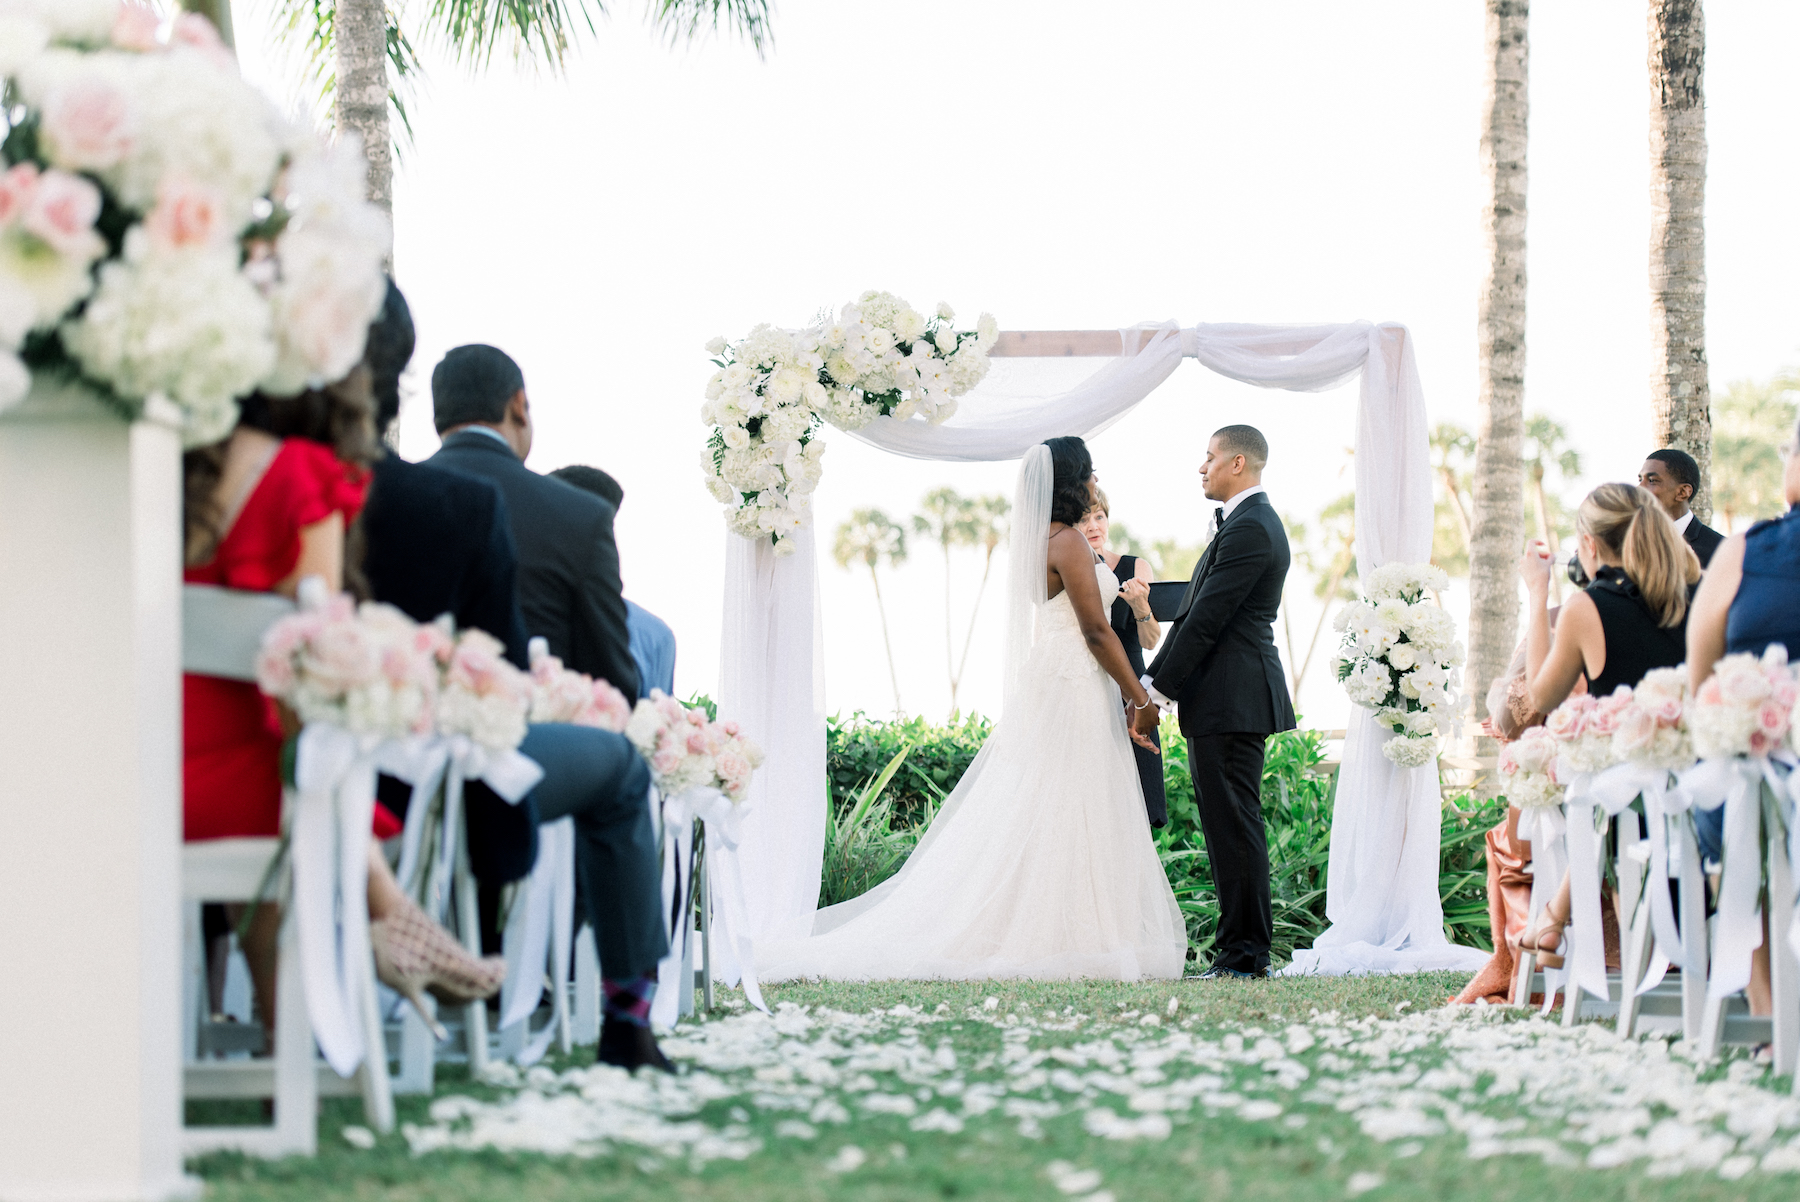 Classic Elegant Wedding Ceremony Garden Waterfront Wedding Decor, Rectangular Arch with White Draping and Floral Arrangements, Bride and Groom Exchanging Vows Ceremony Portrait | Hotel Wedding Venue Ritz Carlton Sarasota | Tampa Wedding Planner Special Moments Event Planning | Officiant A Wedding with Grace